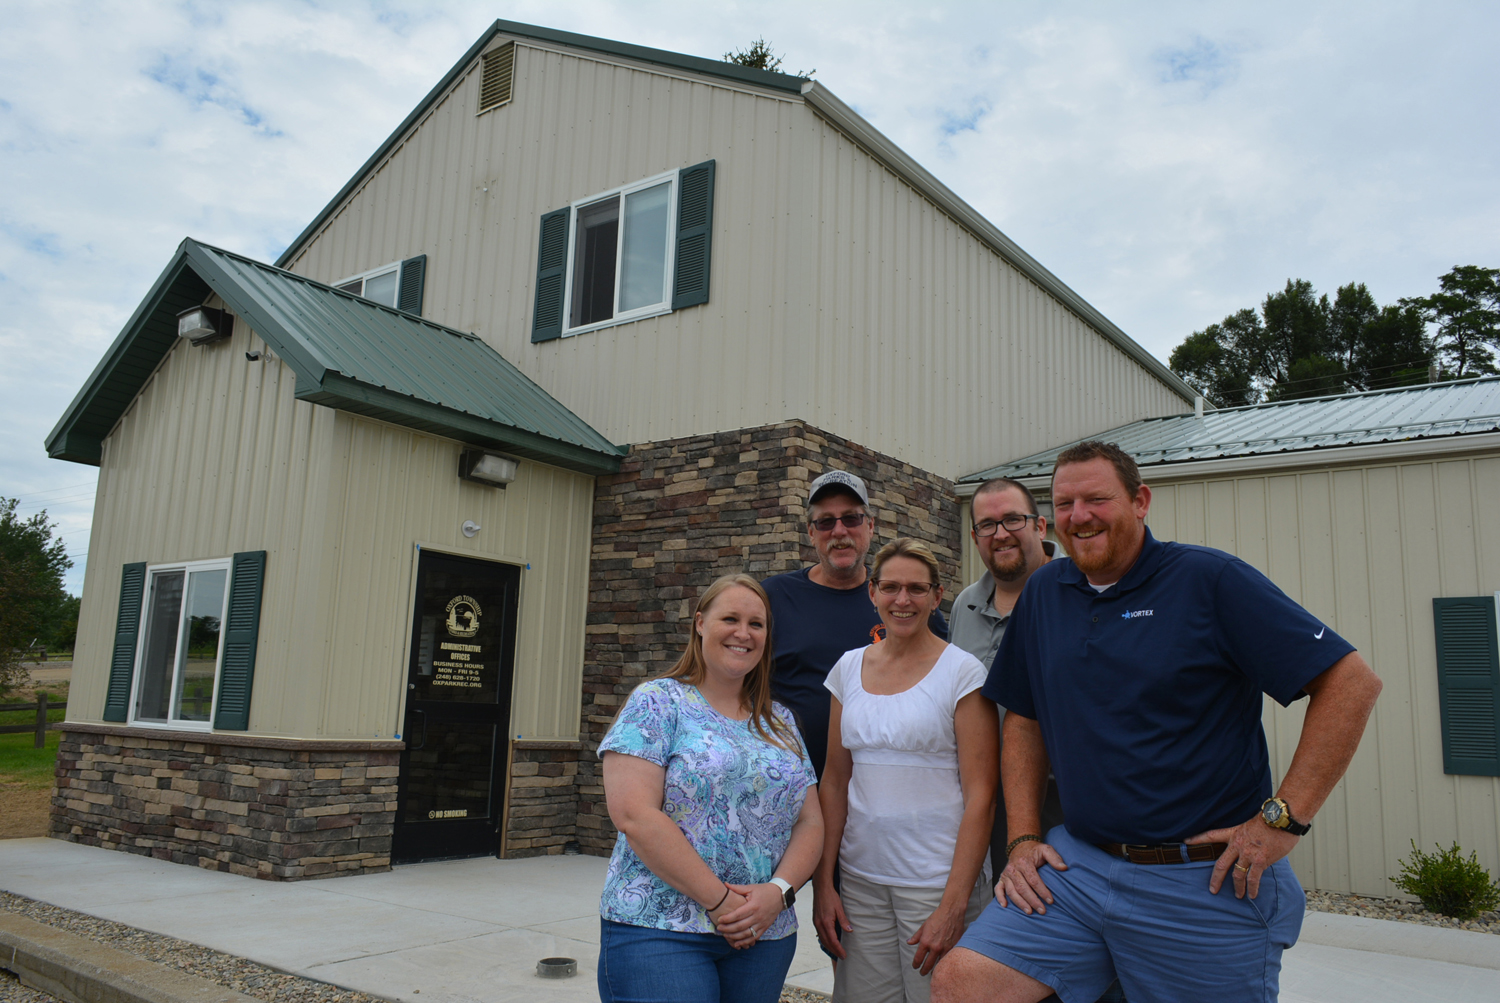 The staff of the Oxford Twp. Parks and Recreation Dept.  includes (from left) Lauren Smith, Jeff Kinasz, Dawn Medici, Dan Sullivan and Director Ron Davis. Photo by C.J. Carnacchio.